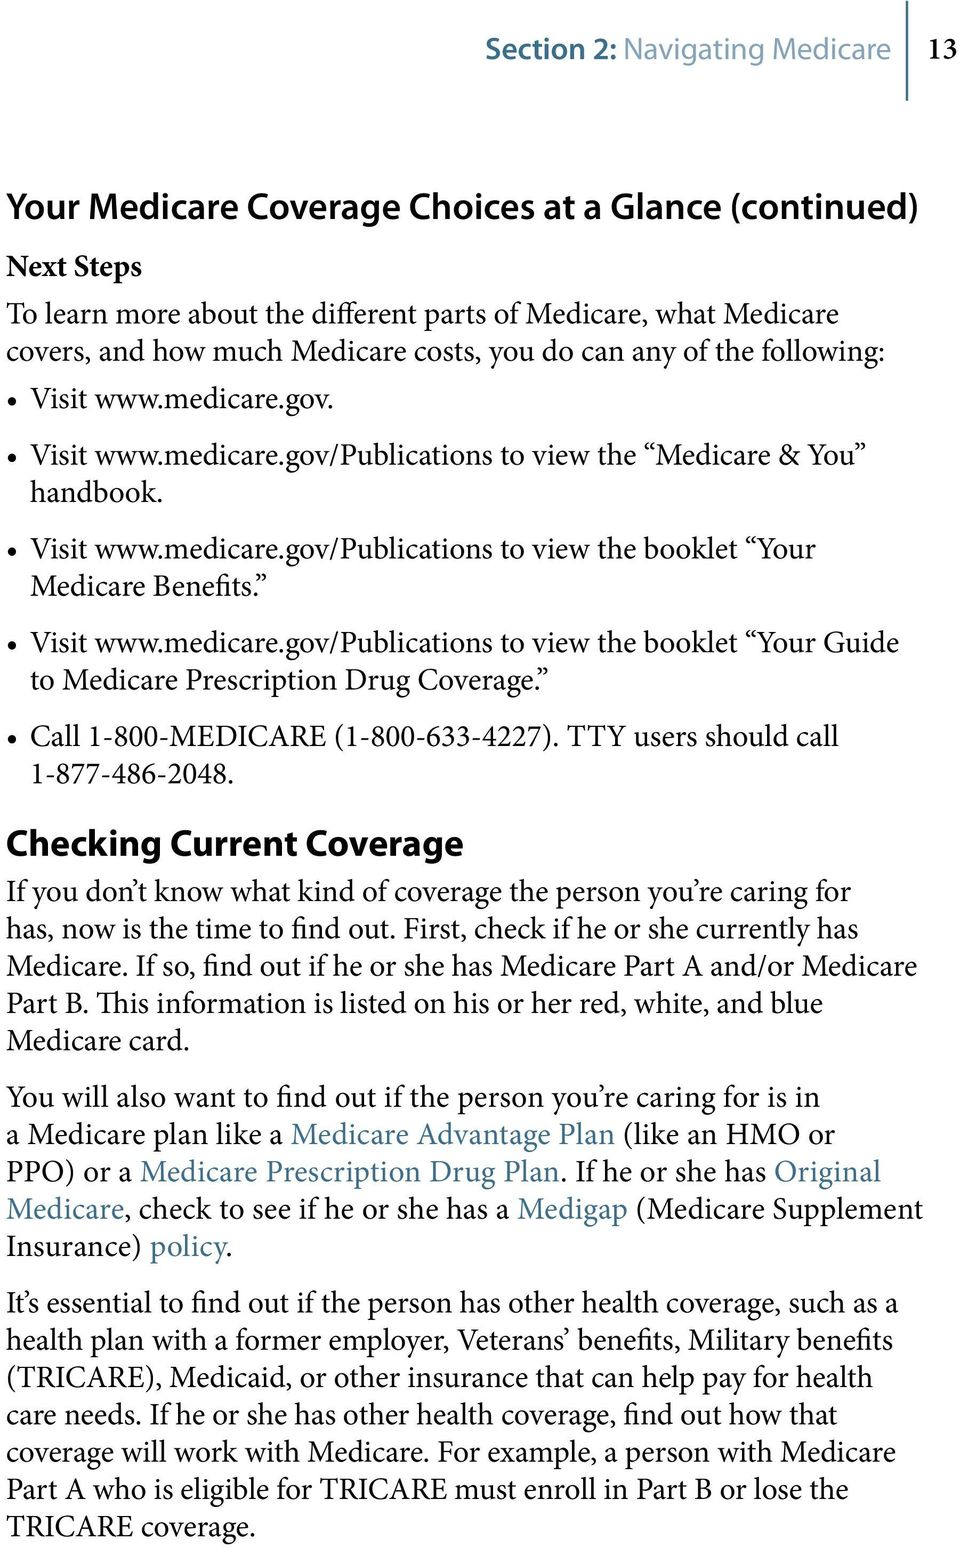 Visit www.medicare.gov/publications to view the booklet Your Guide to Medicare Prescription Drug Coverage. Call 1-800-MEDICARE (1-800-633-4227). TTY users should call 1-877-486-2048.